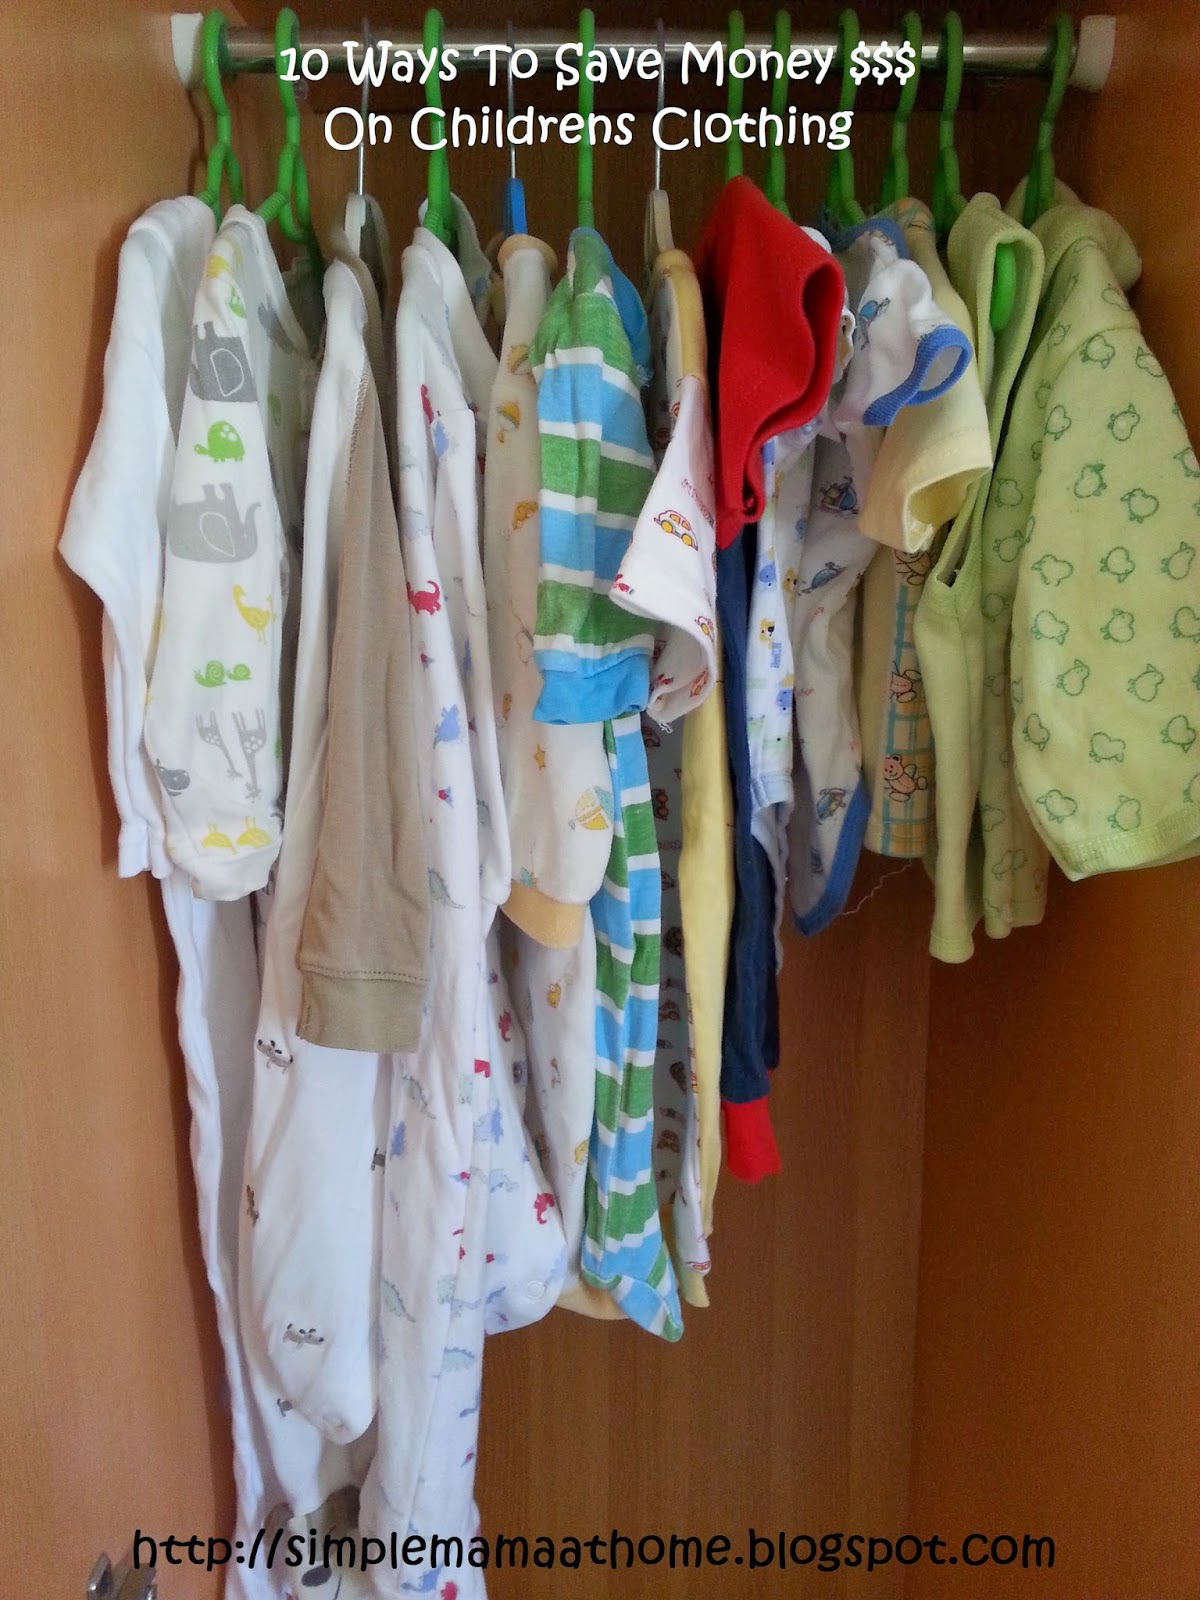 10 Ways To Save Money On Childrens Clothing